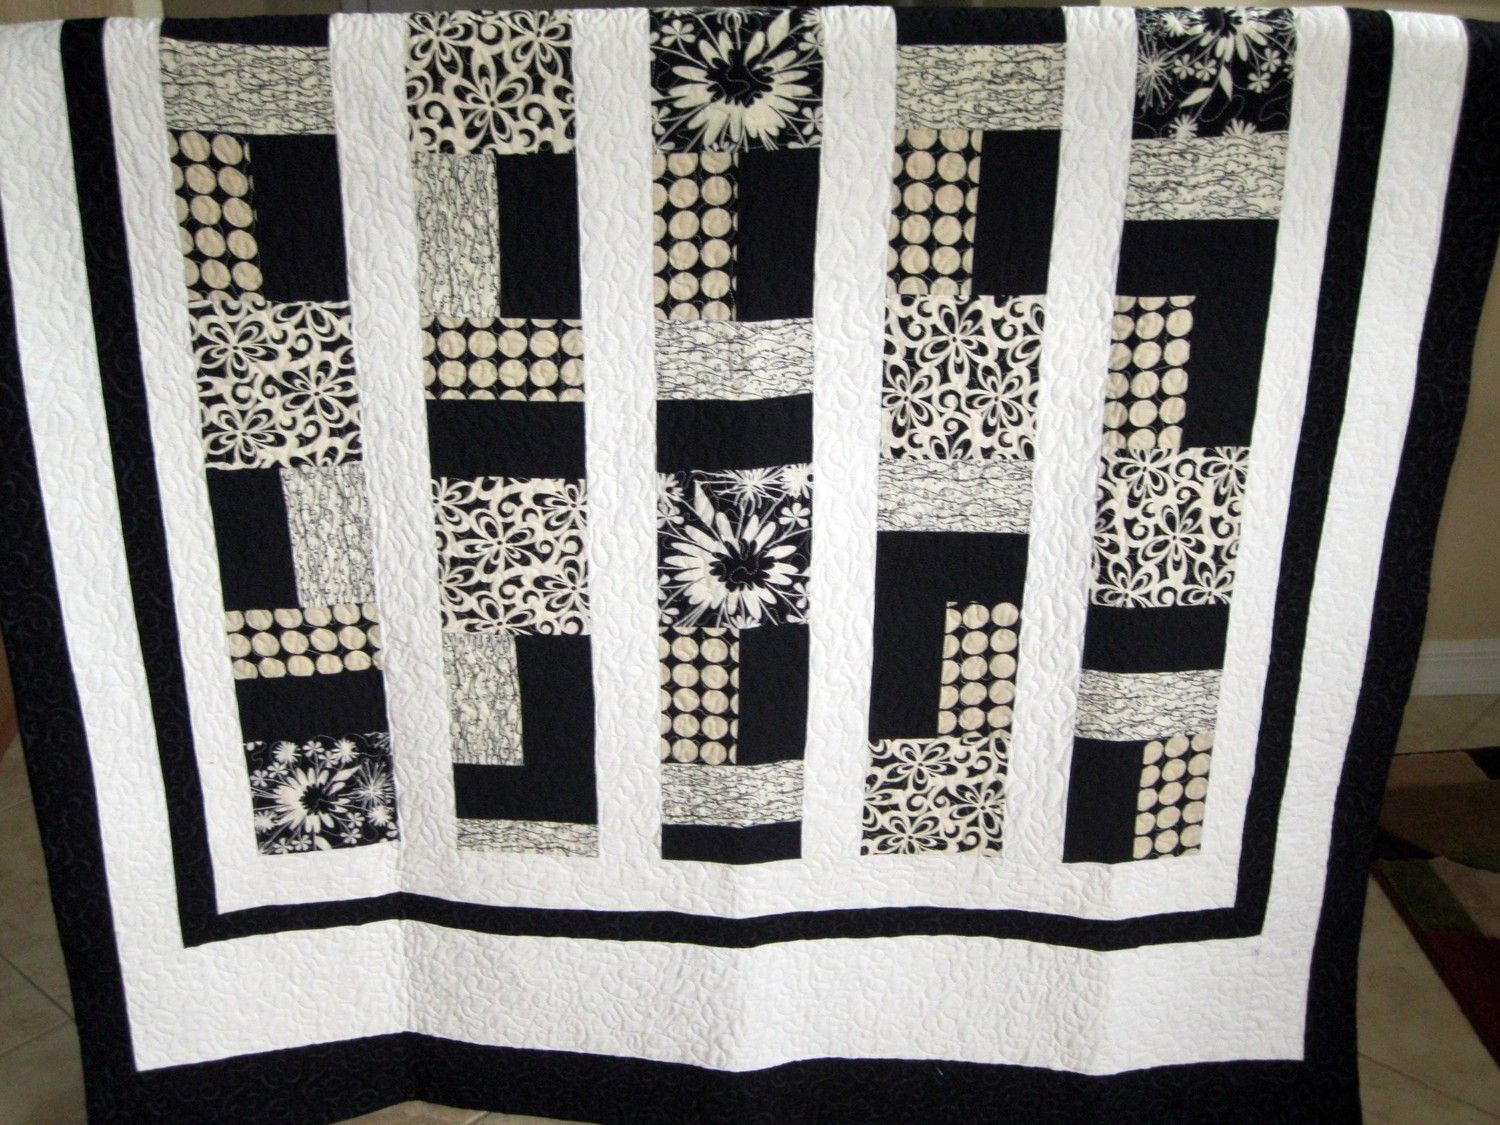 quilt wavy and zag auntie black zig stripe yard com white cotton chris elling fabric chevron massive products